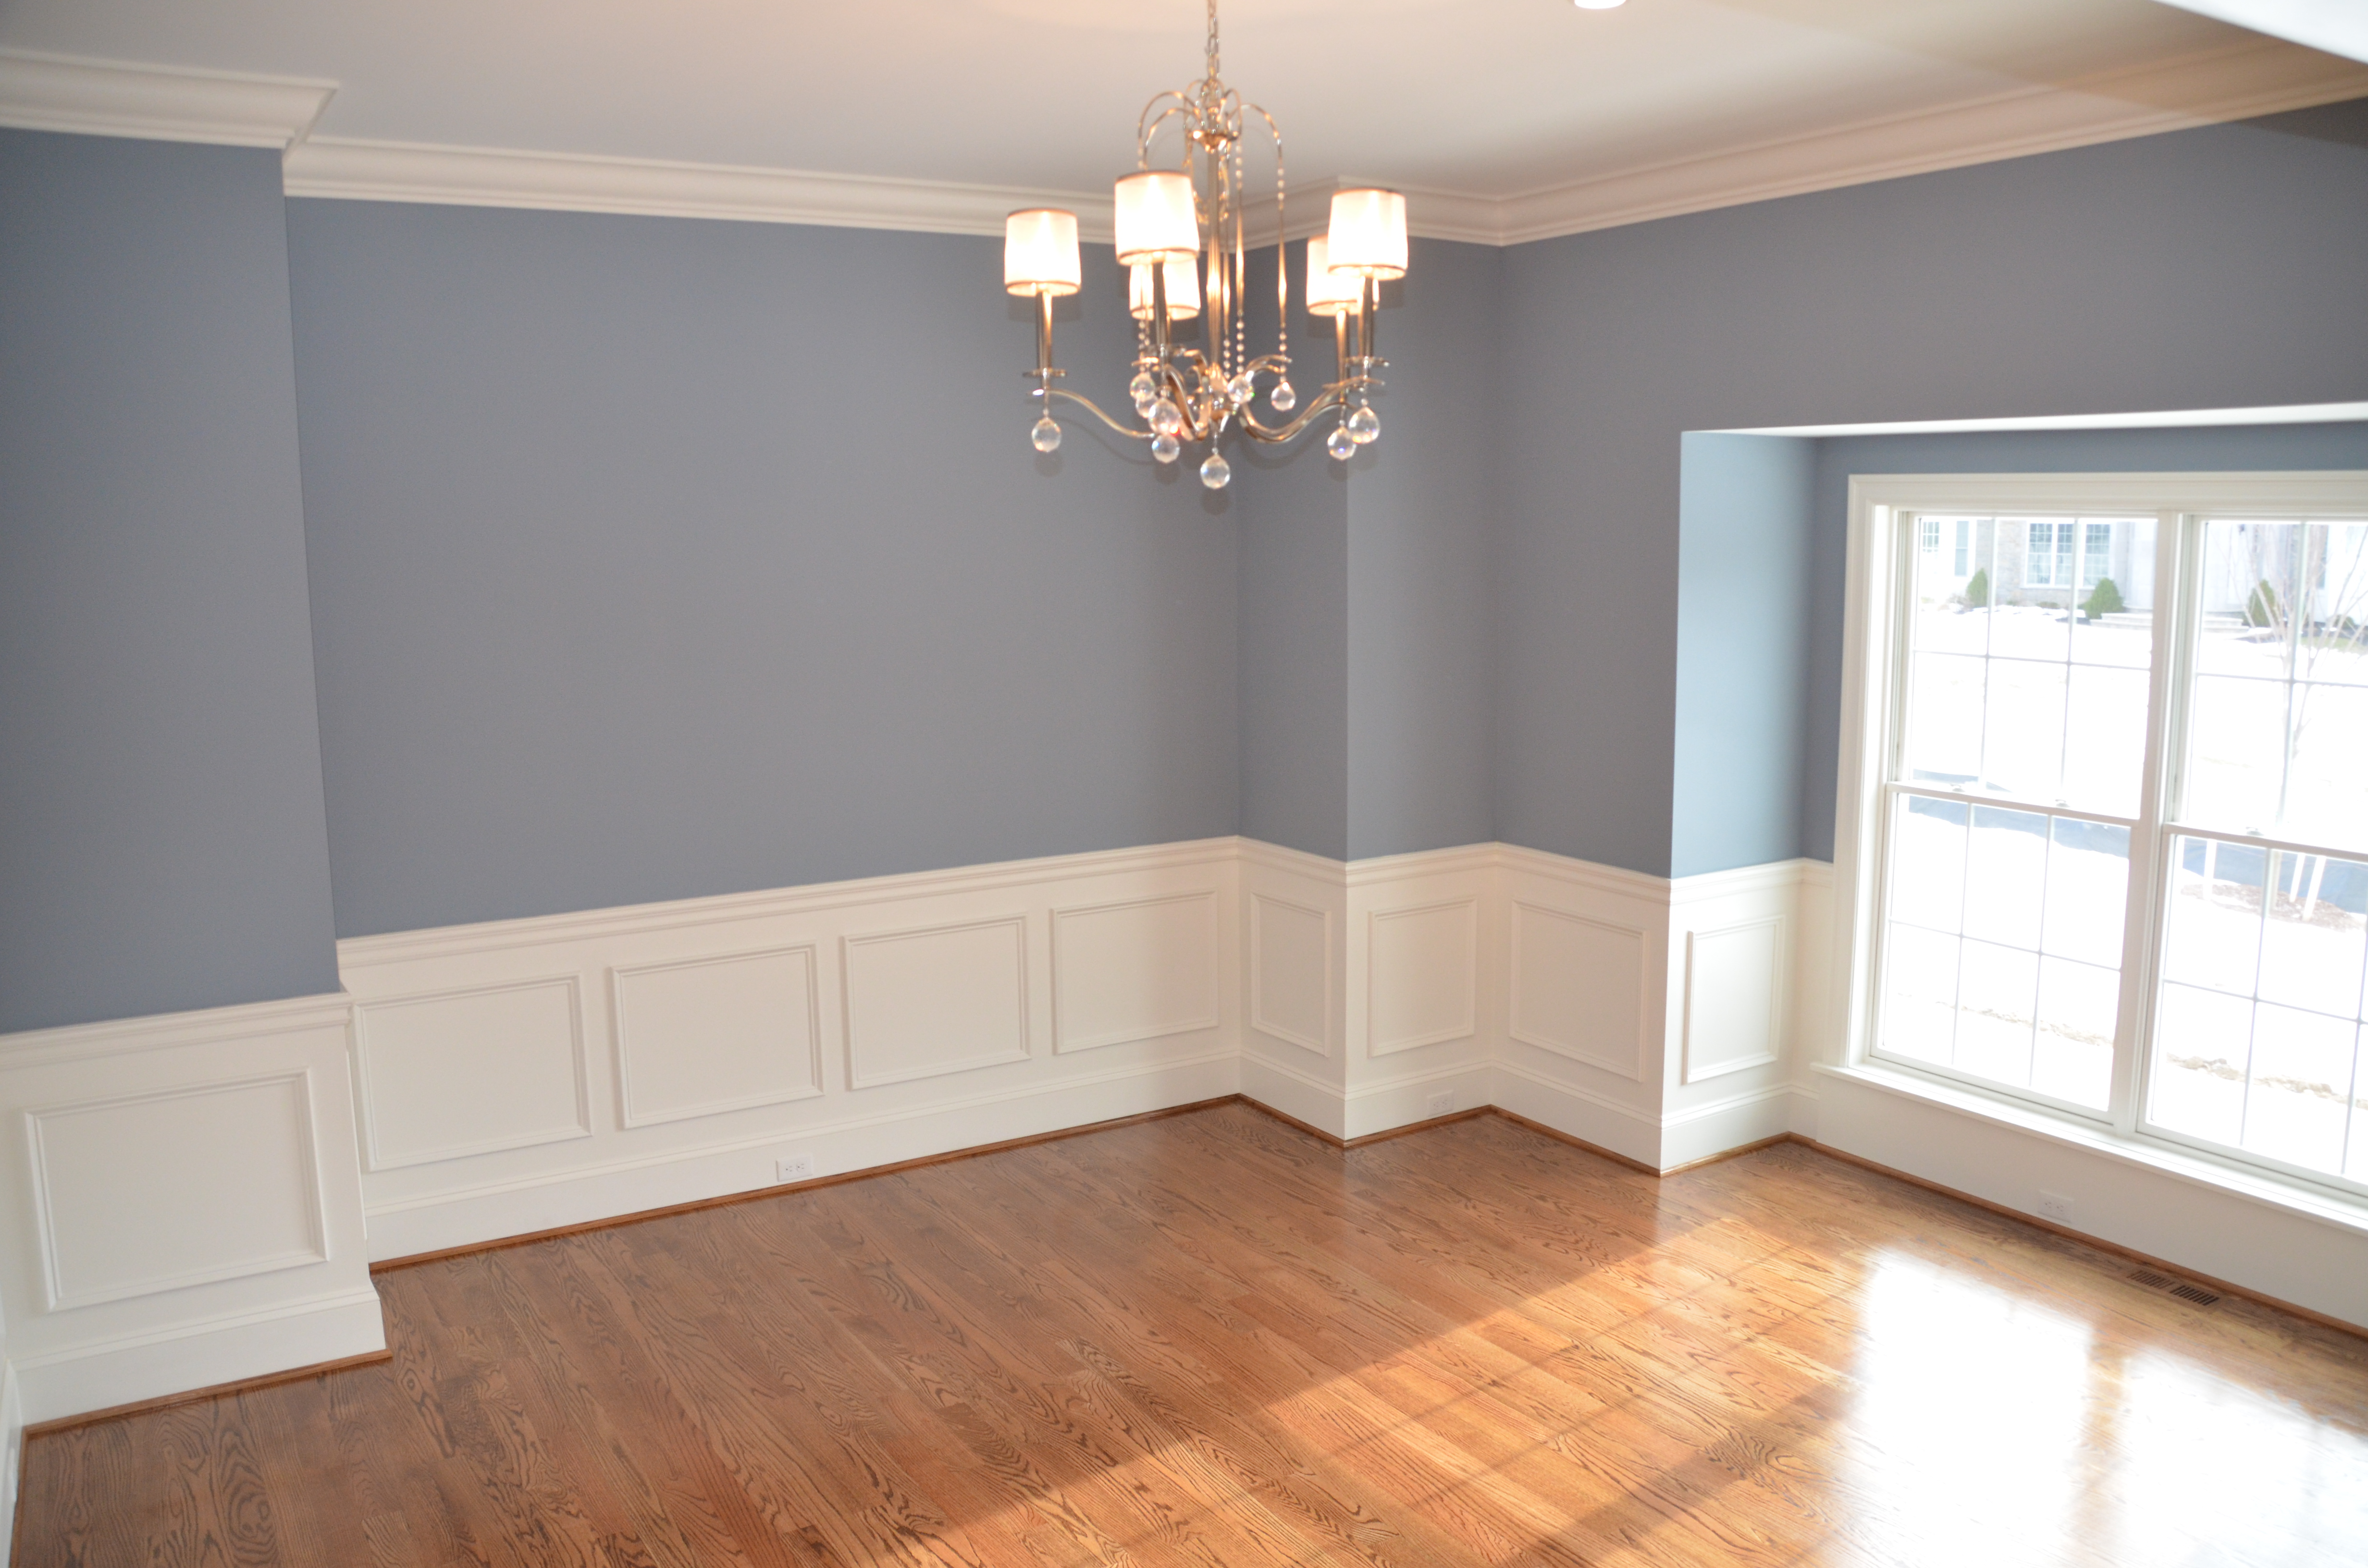 Pittsford Builder - Dining Room